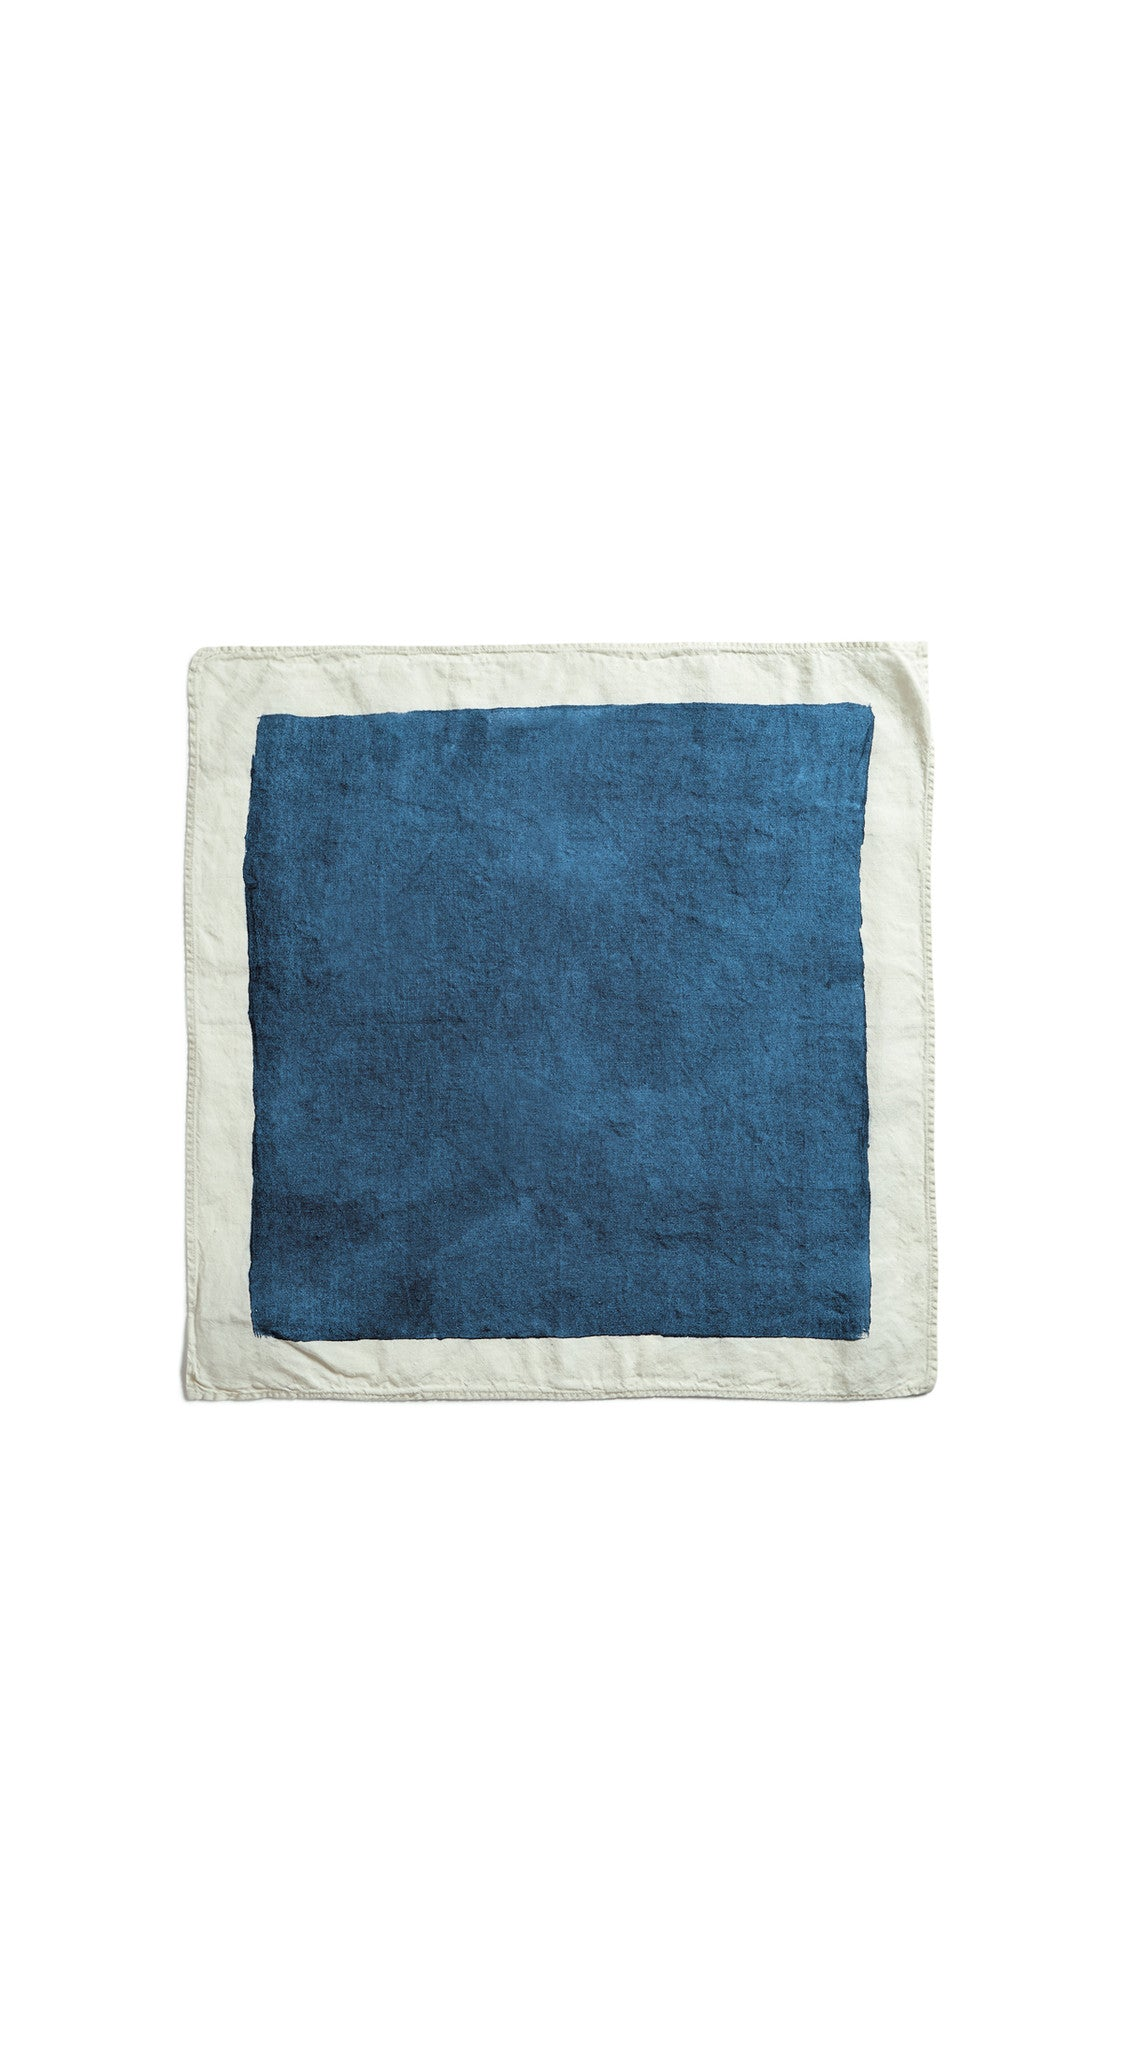 Full Field Linen Napkin in Midnight Blue